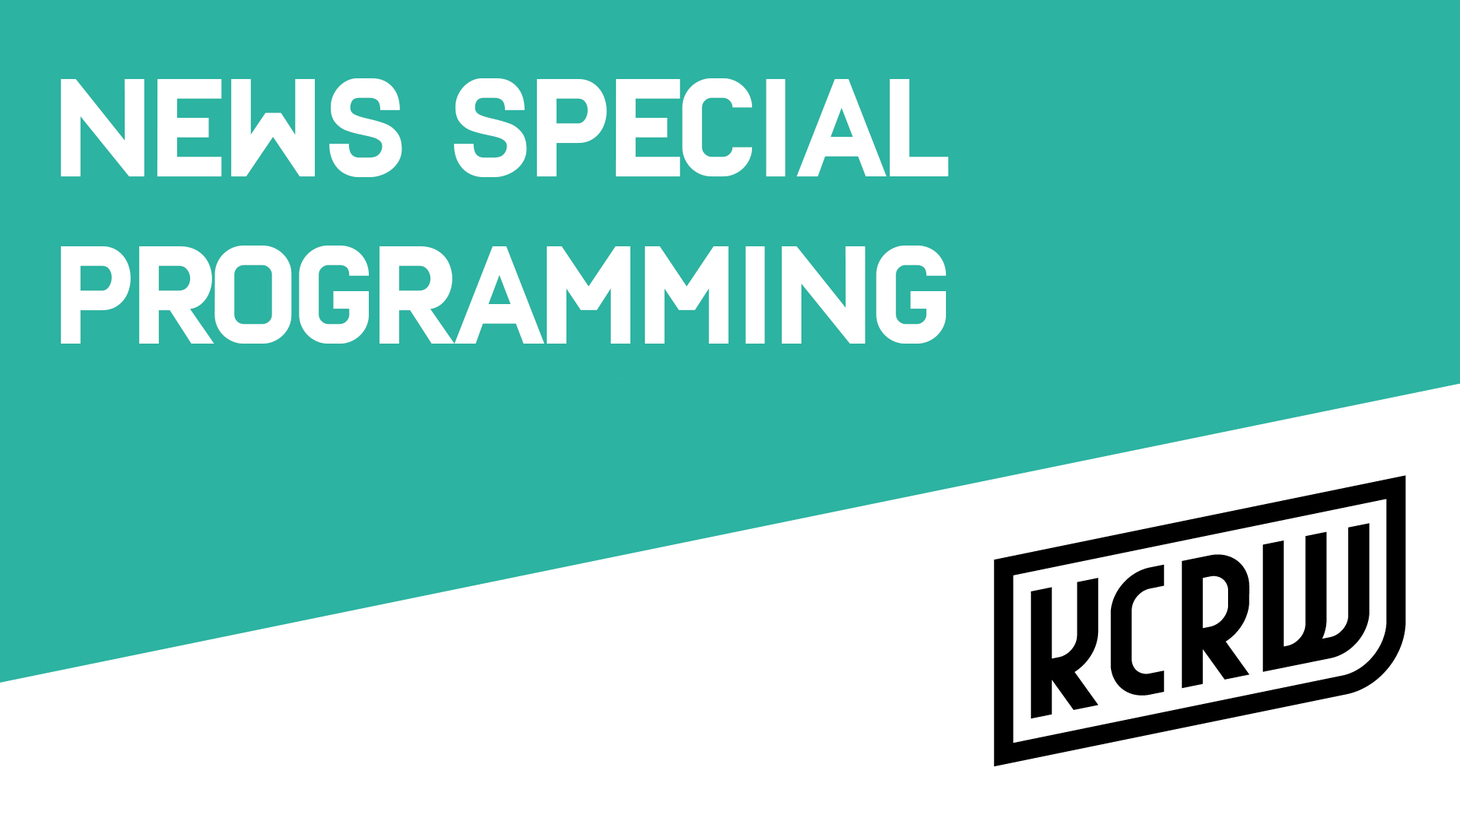 Between the global pandemic and a possible recall election, California's governor finds himself battling for his political survival. Live special coverage of Governor Newsom's 2021 State of the State address here on KCRW.